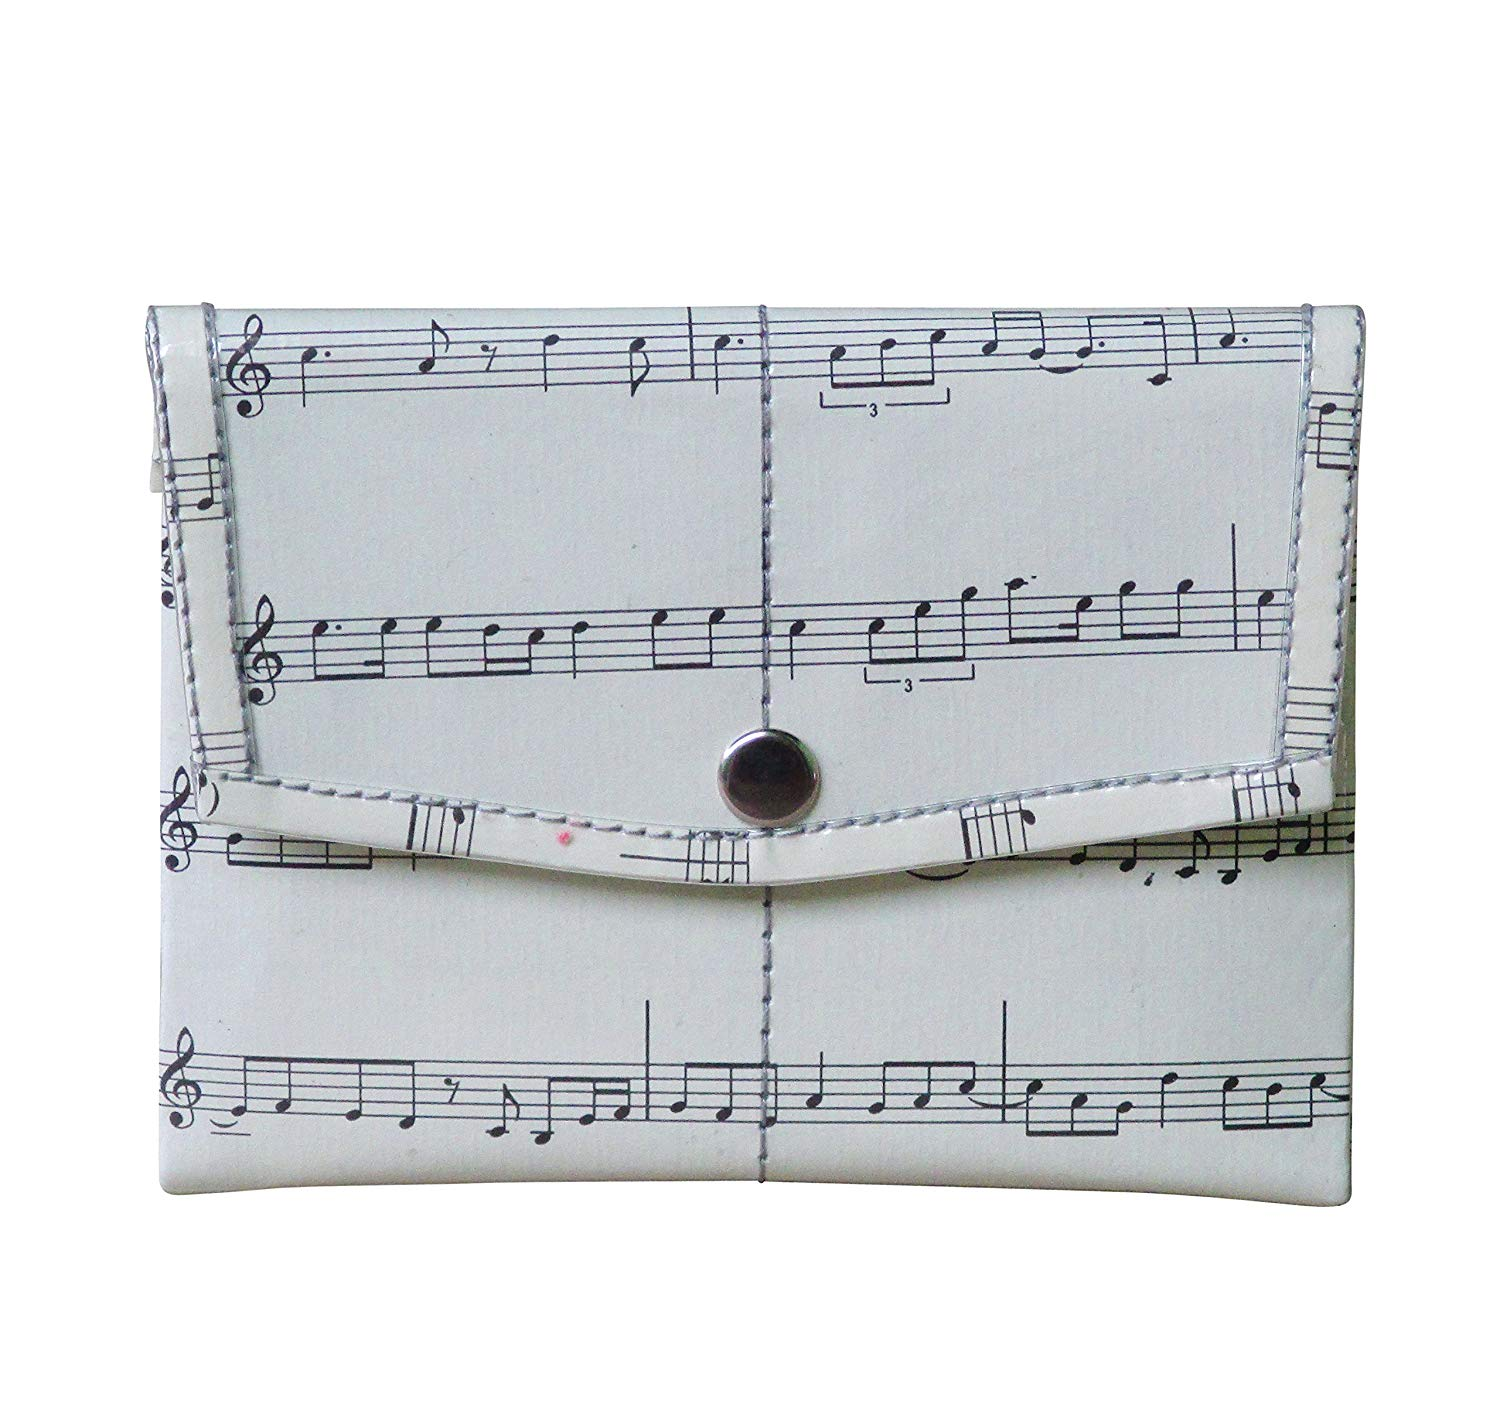 Get Quotations · Snap coin purse made of musical note sheet - FREE  SHIPPING, musician music scores music